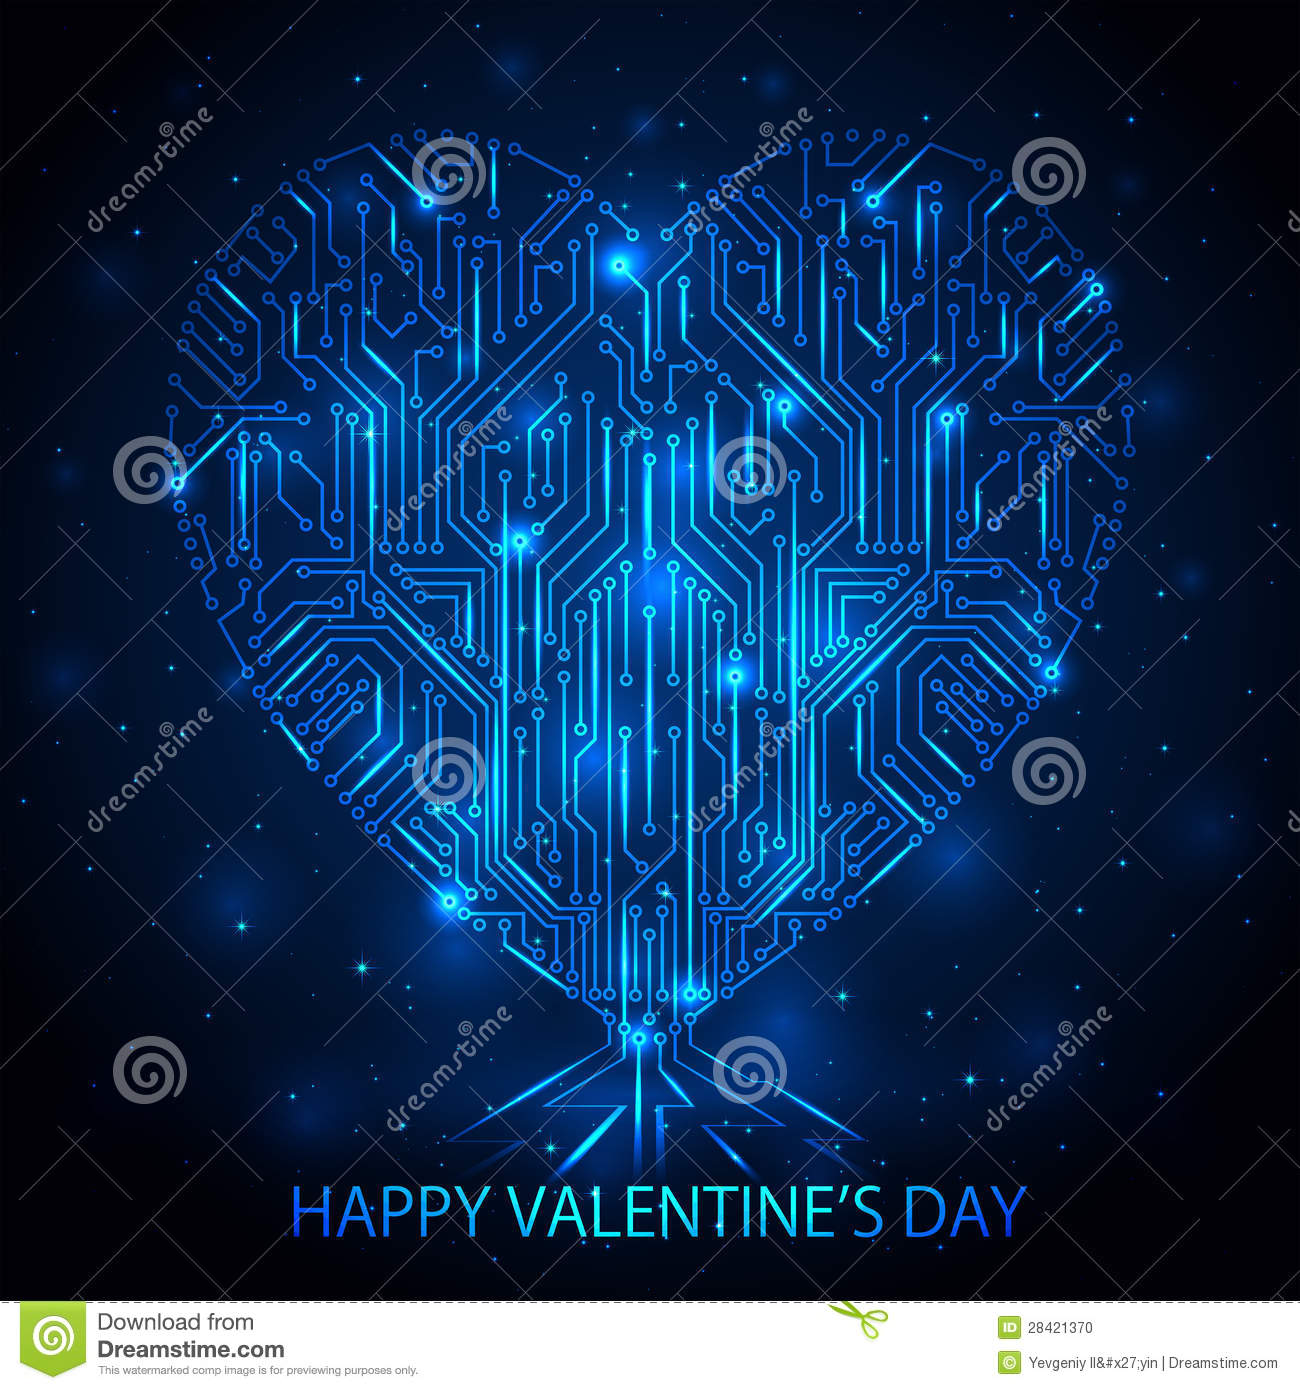 Abstract Technology Background Vector 3117238 moreover 438467713703360108 also Stock Photo Digital Heart Image28421370 likewise Flex Printed together with Microstrip. on circuit board pattern